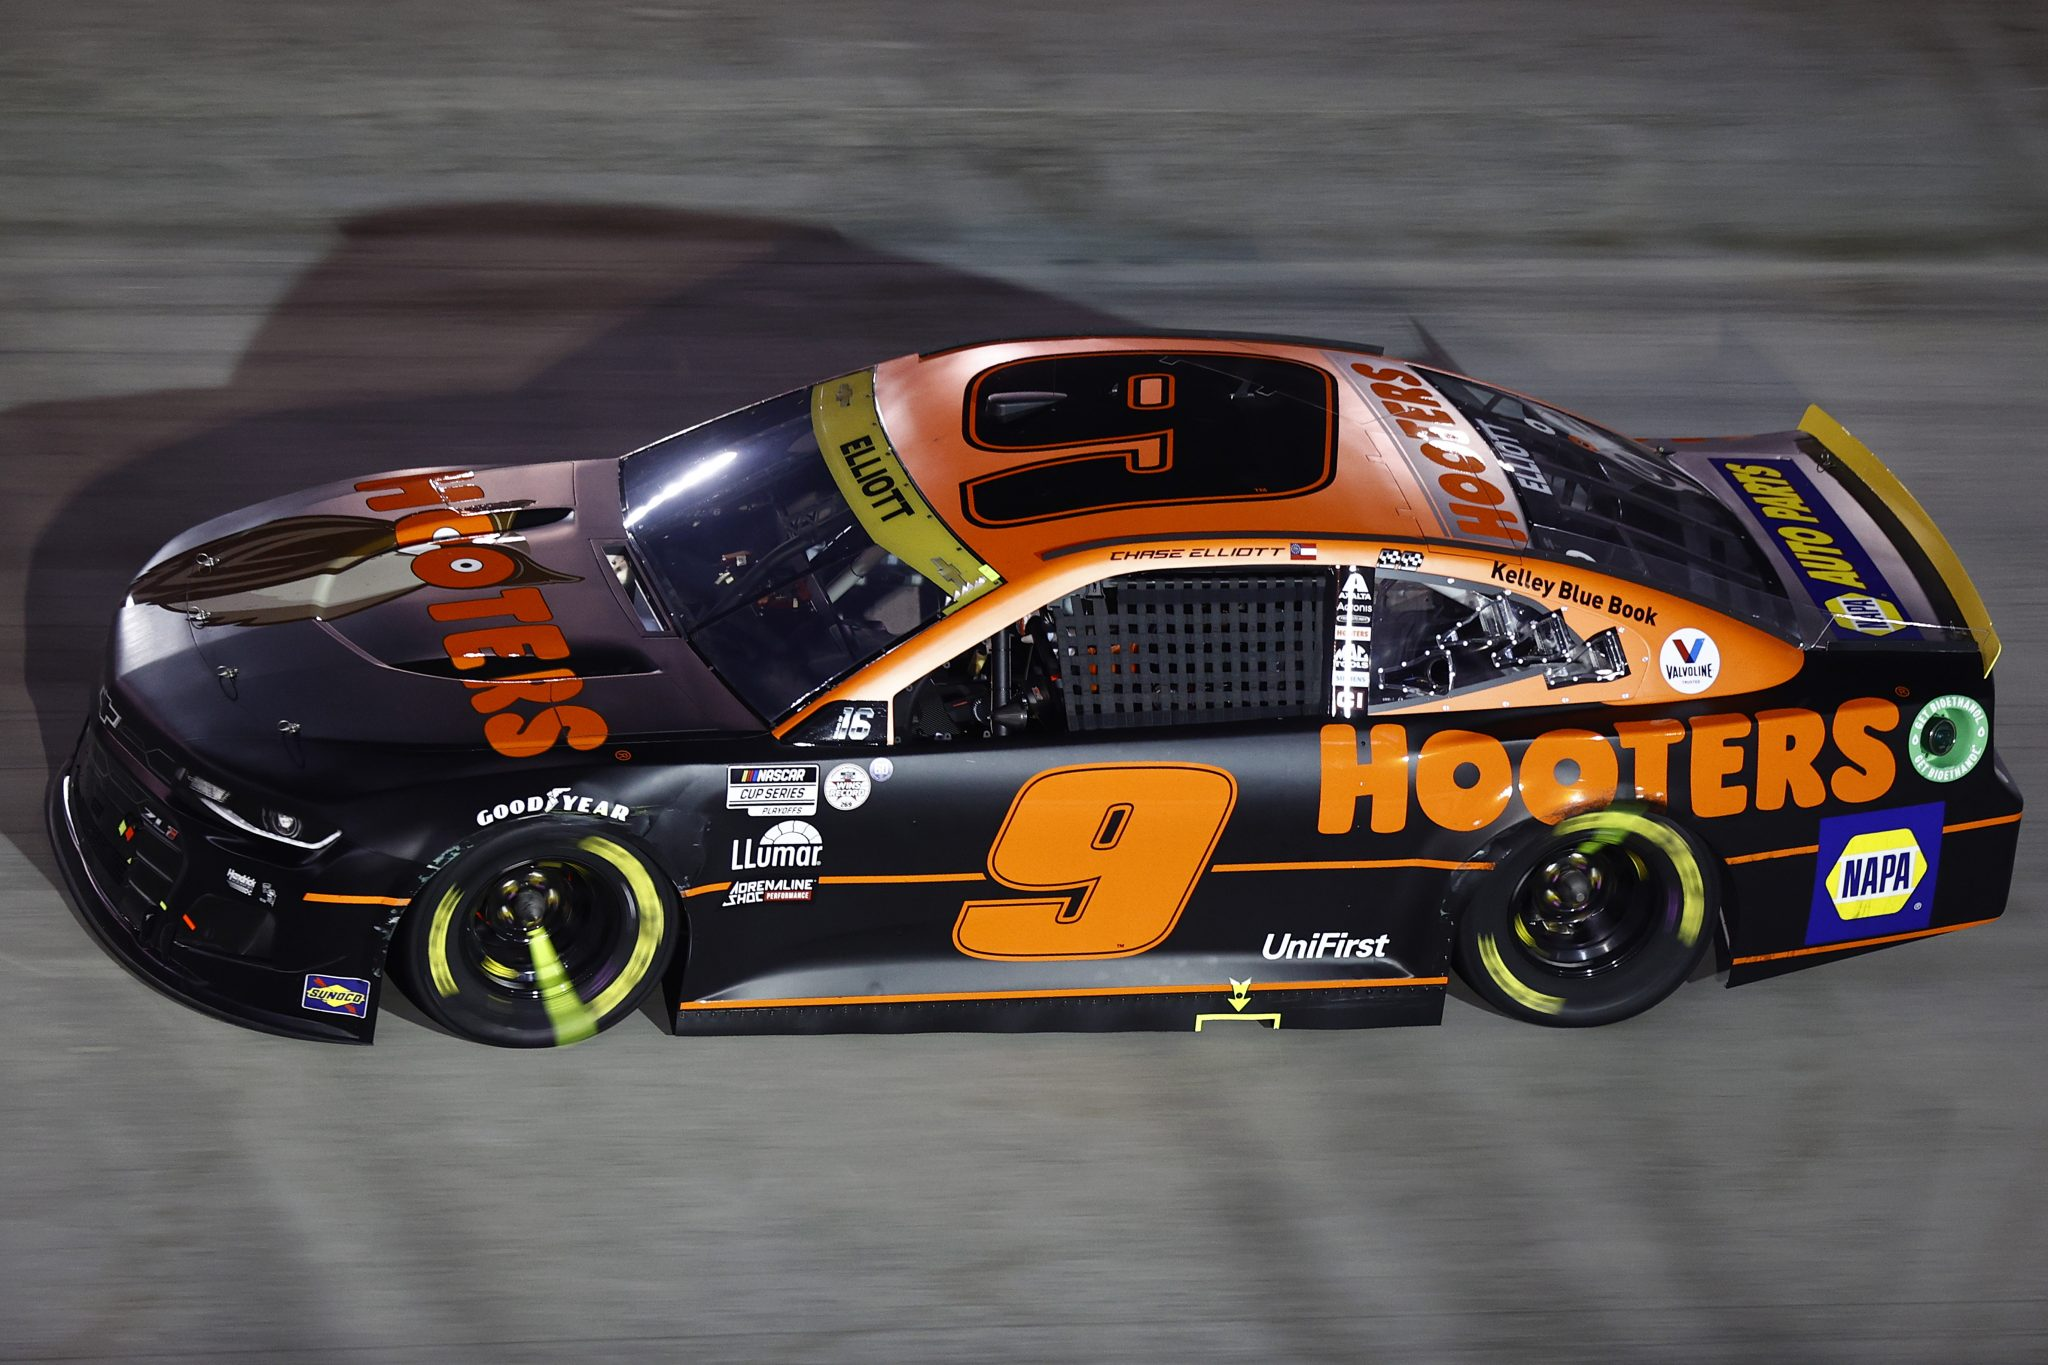 BRISTOL, TENNESSEE - SEPTEMBER 18: <>during the NASCAR Cup Series Bass Pro Shops Night Race at Bristol Motor Speedway on September 18, 2021 in Bristol, Tennessee. (Photo by Jared C. Tilton/Getty Images)   Getty Images